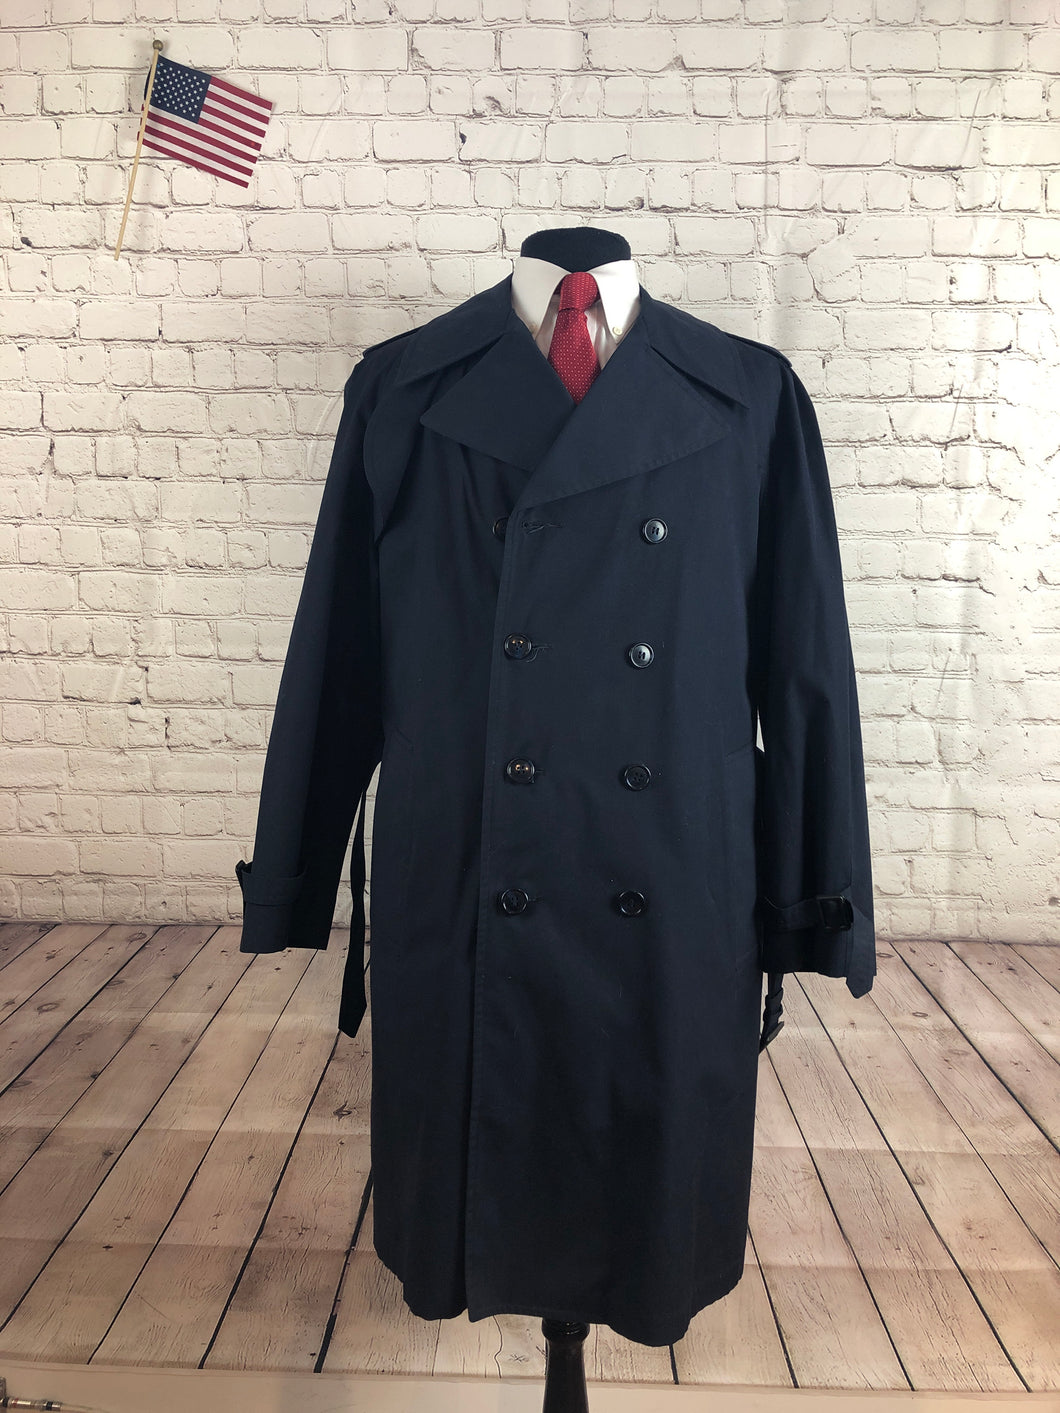 London Fog Men's Navy COTTON BLEND Trench Coat Jacket Size 38R $695 - SUIT CHARITY OUTLET